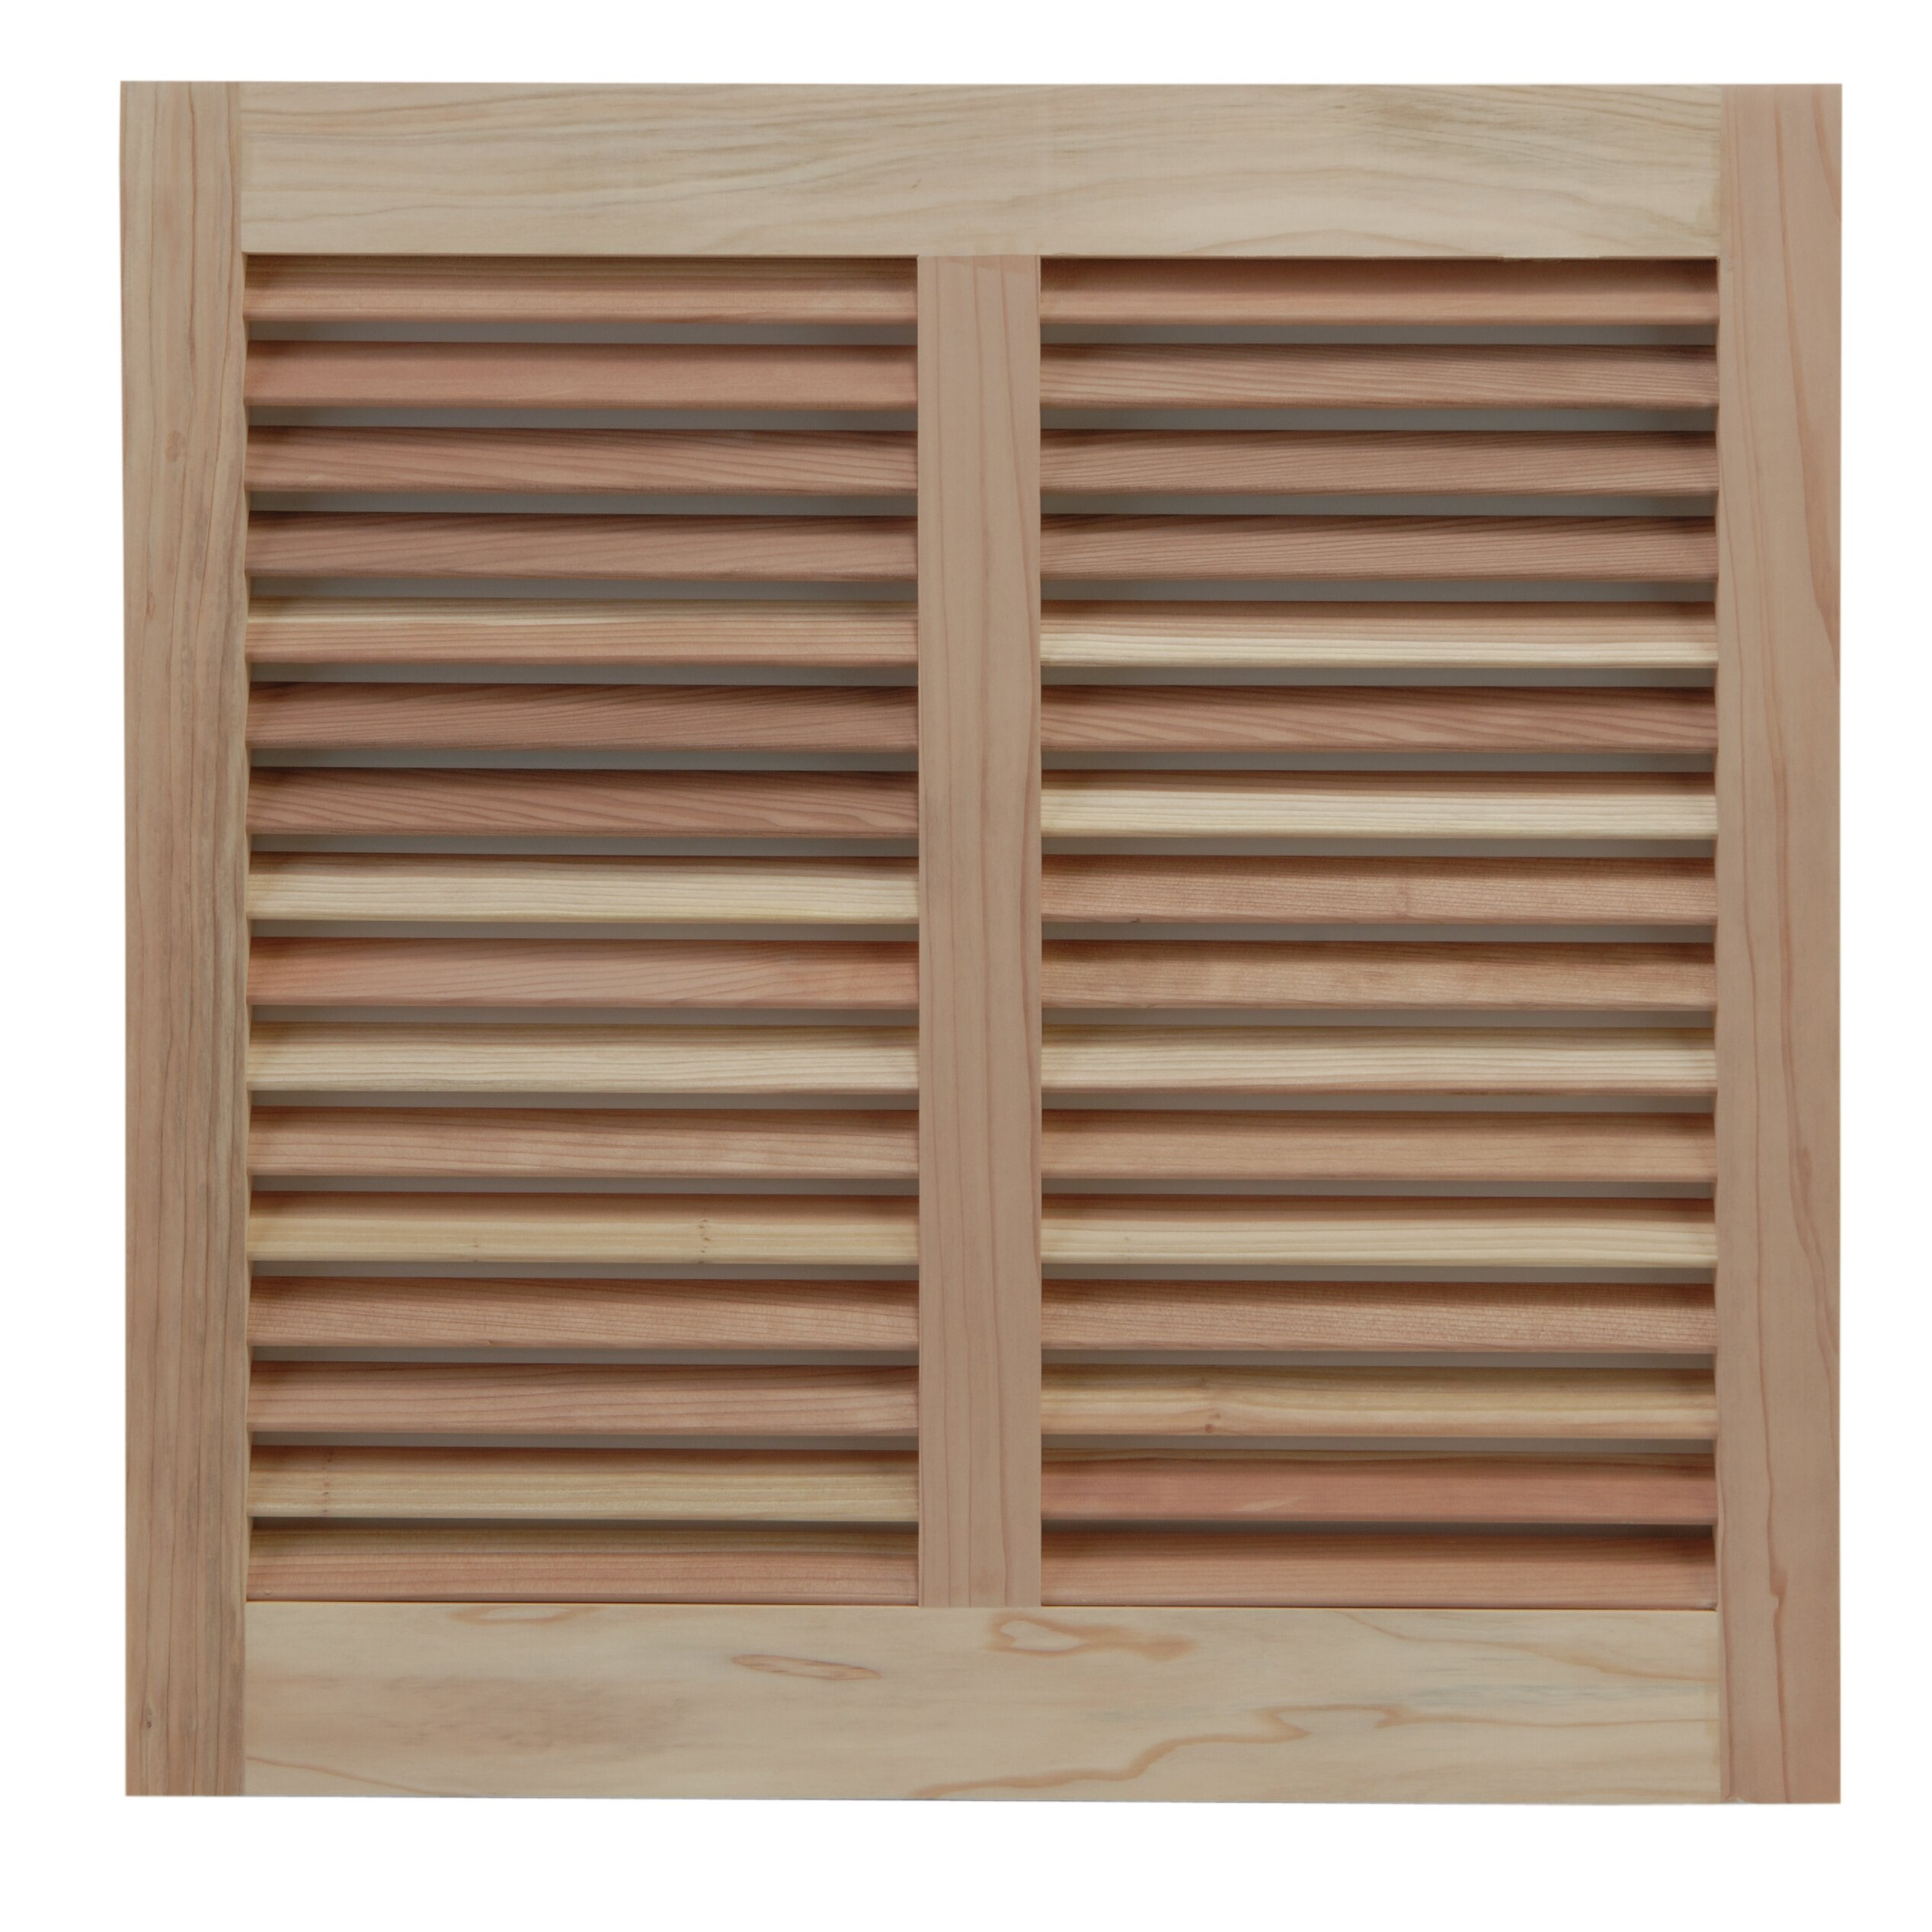 rustic wood shutters pin wall extra shutter decor decorative holder farmhouse wreath large interior hardware